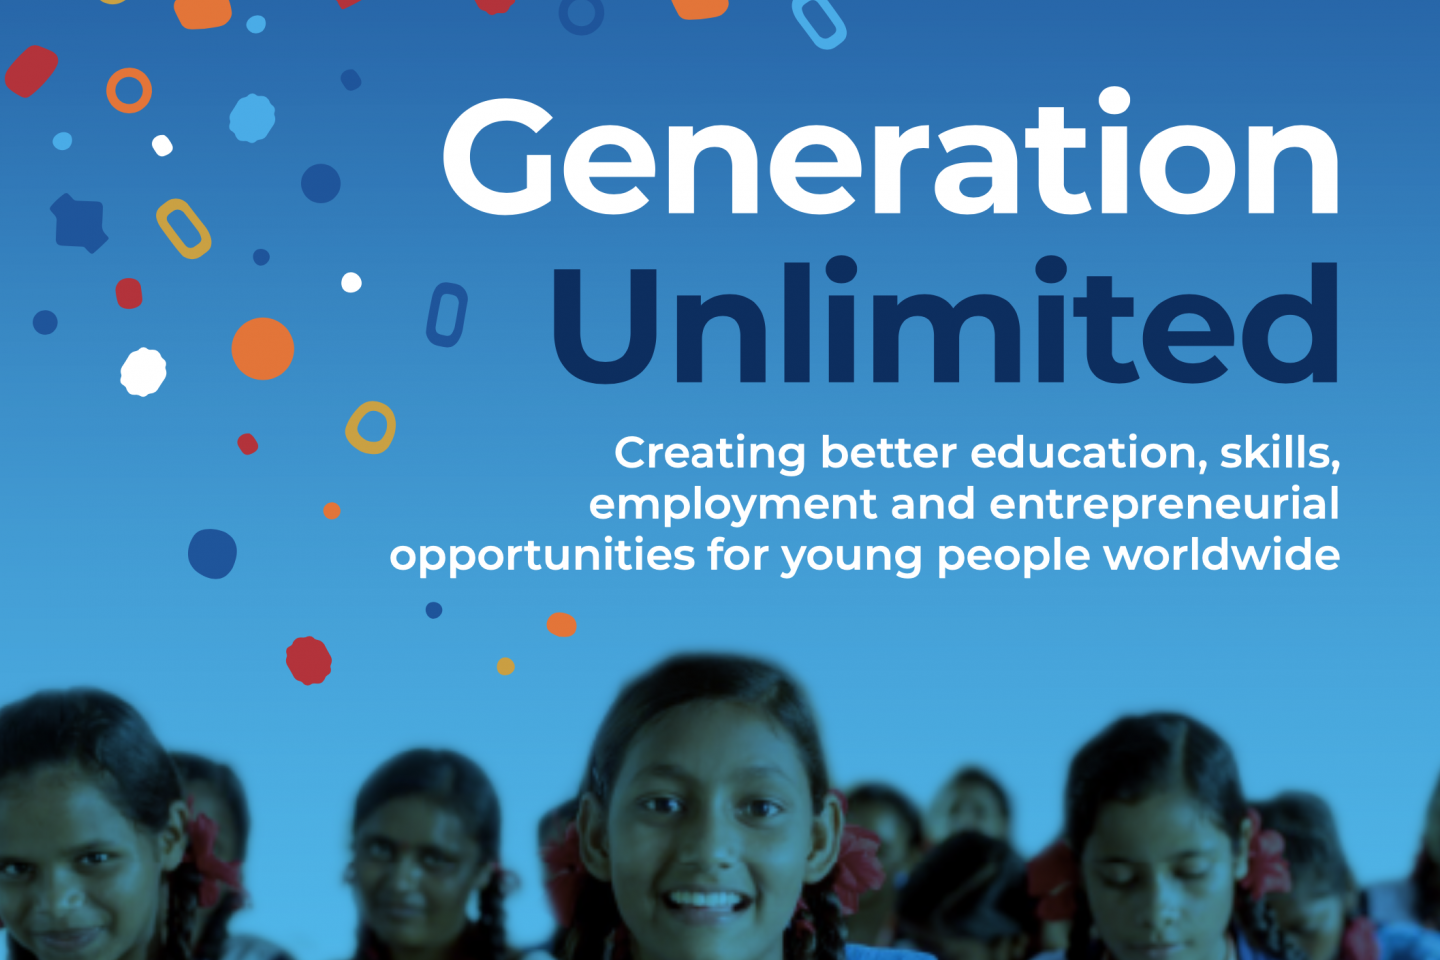 Generation Unlimited launched in Ethiopia